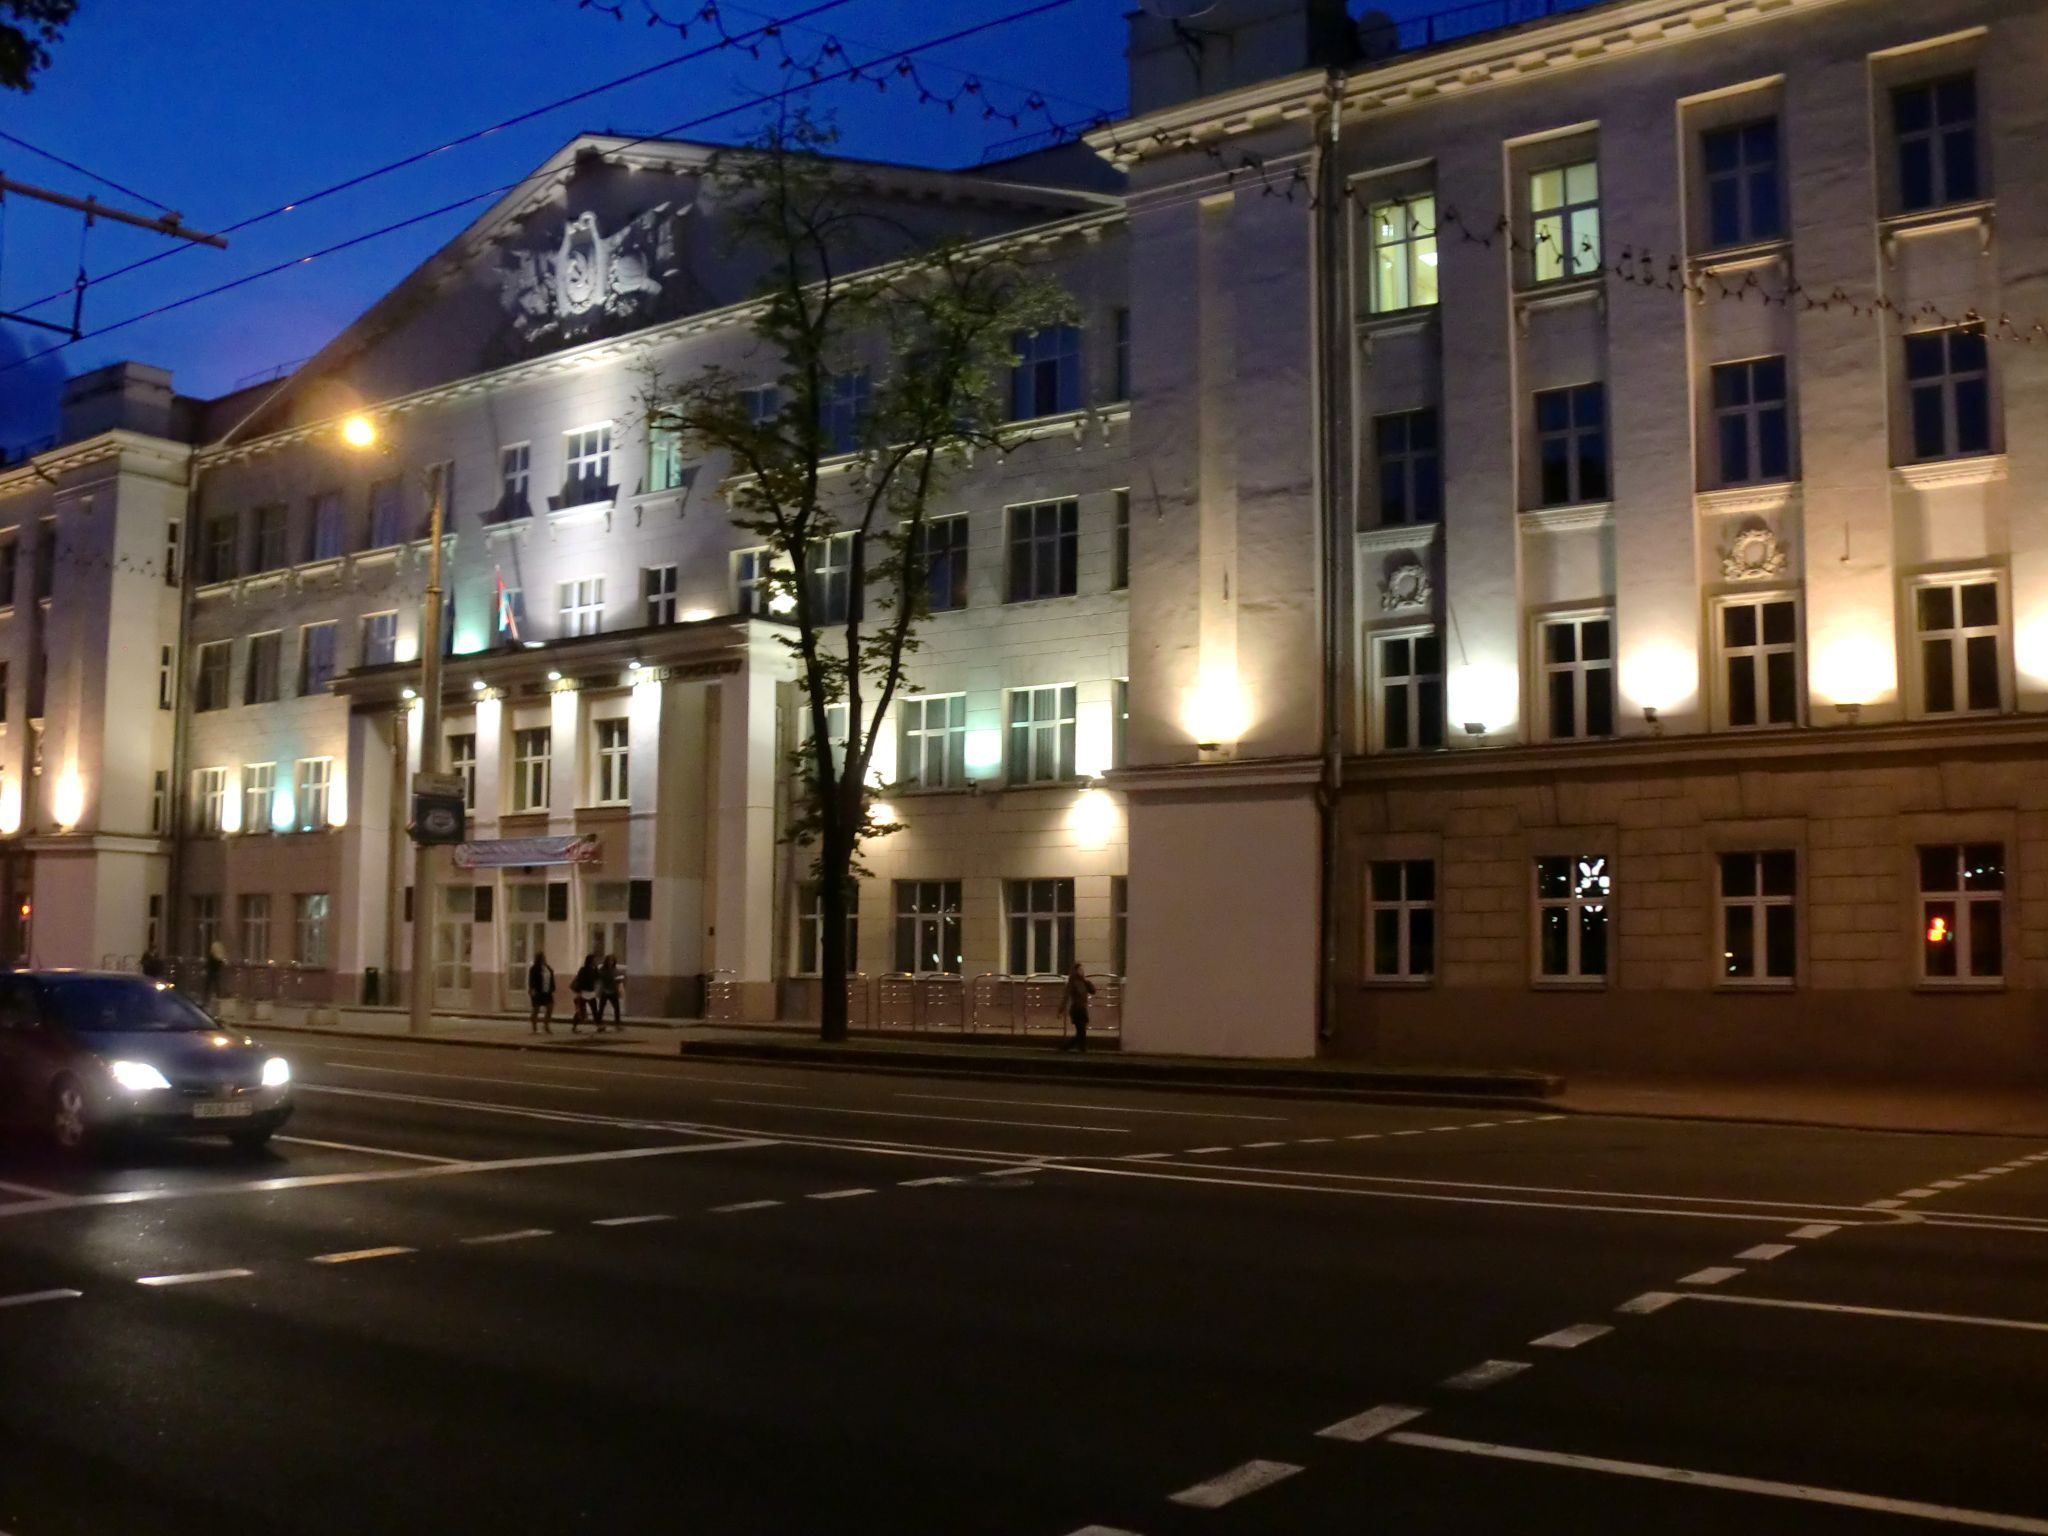 Minsk city 42 - Minsk, 1 amazing city you have to see